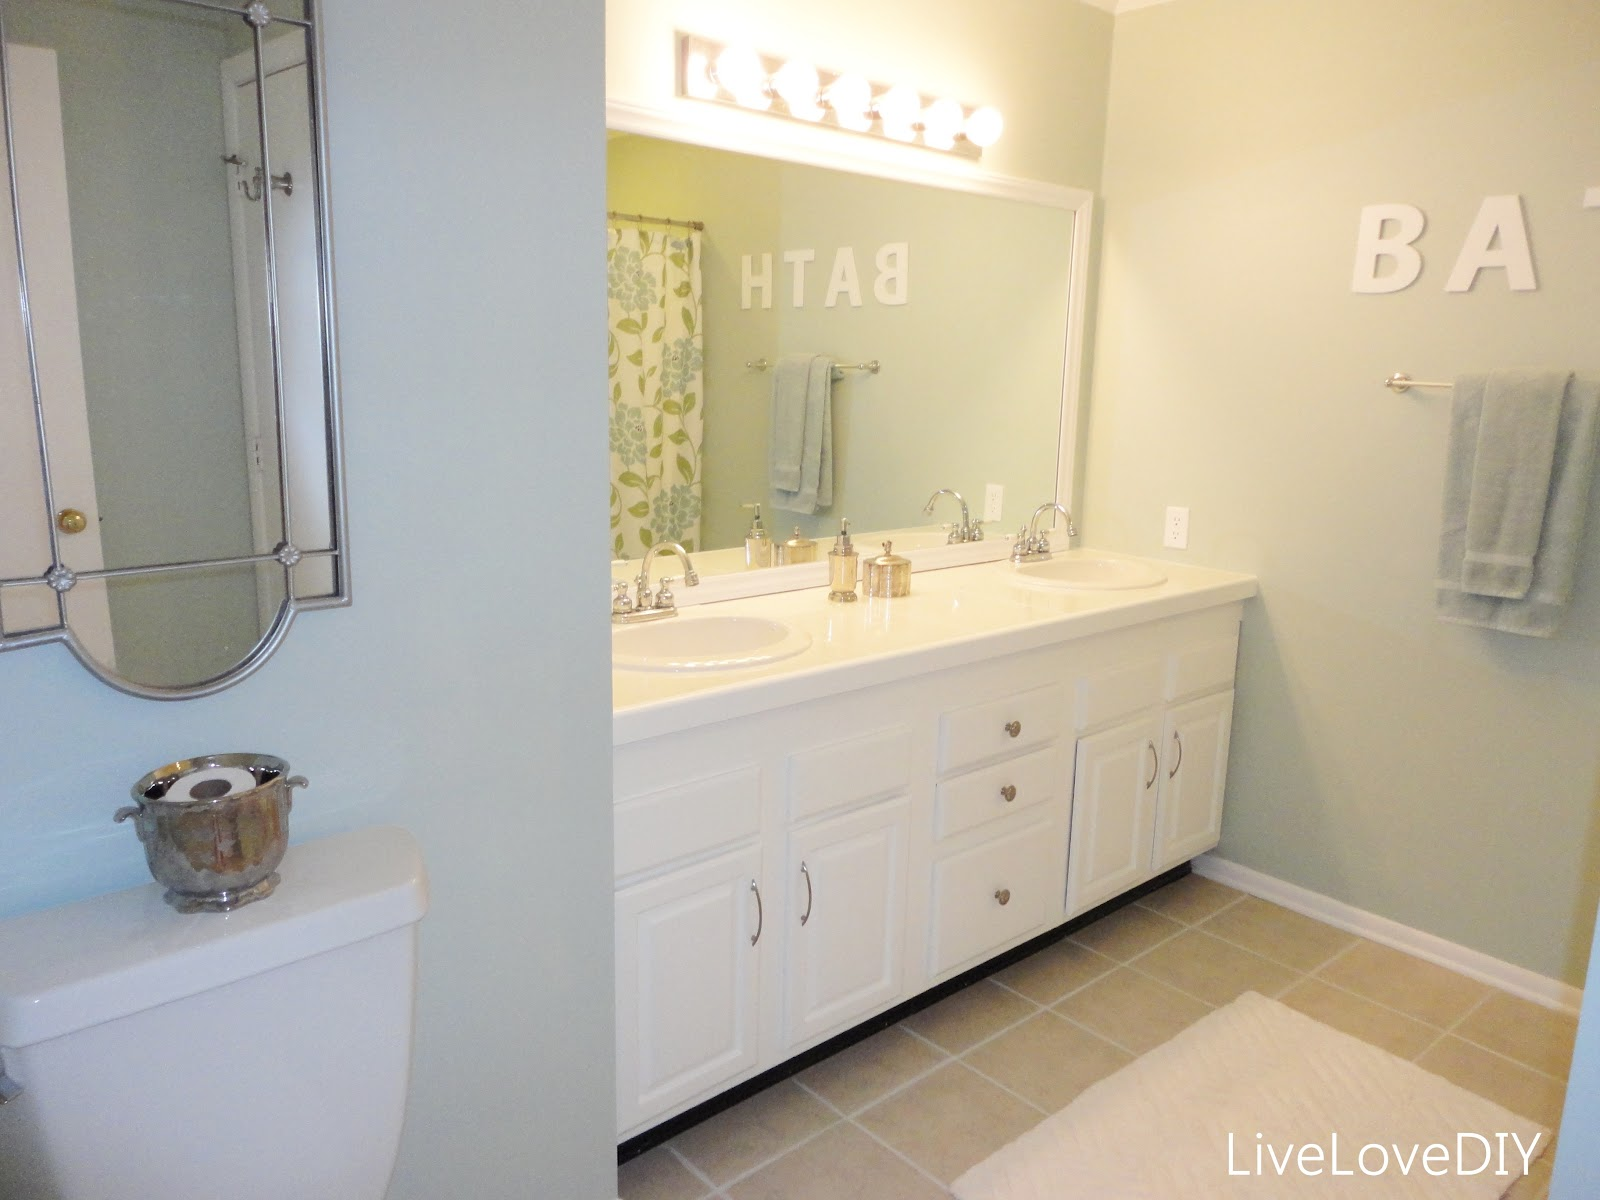 30 Cool Pictures Of Old Bathroom Tile Ideas 2019